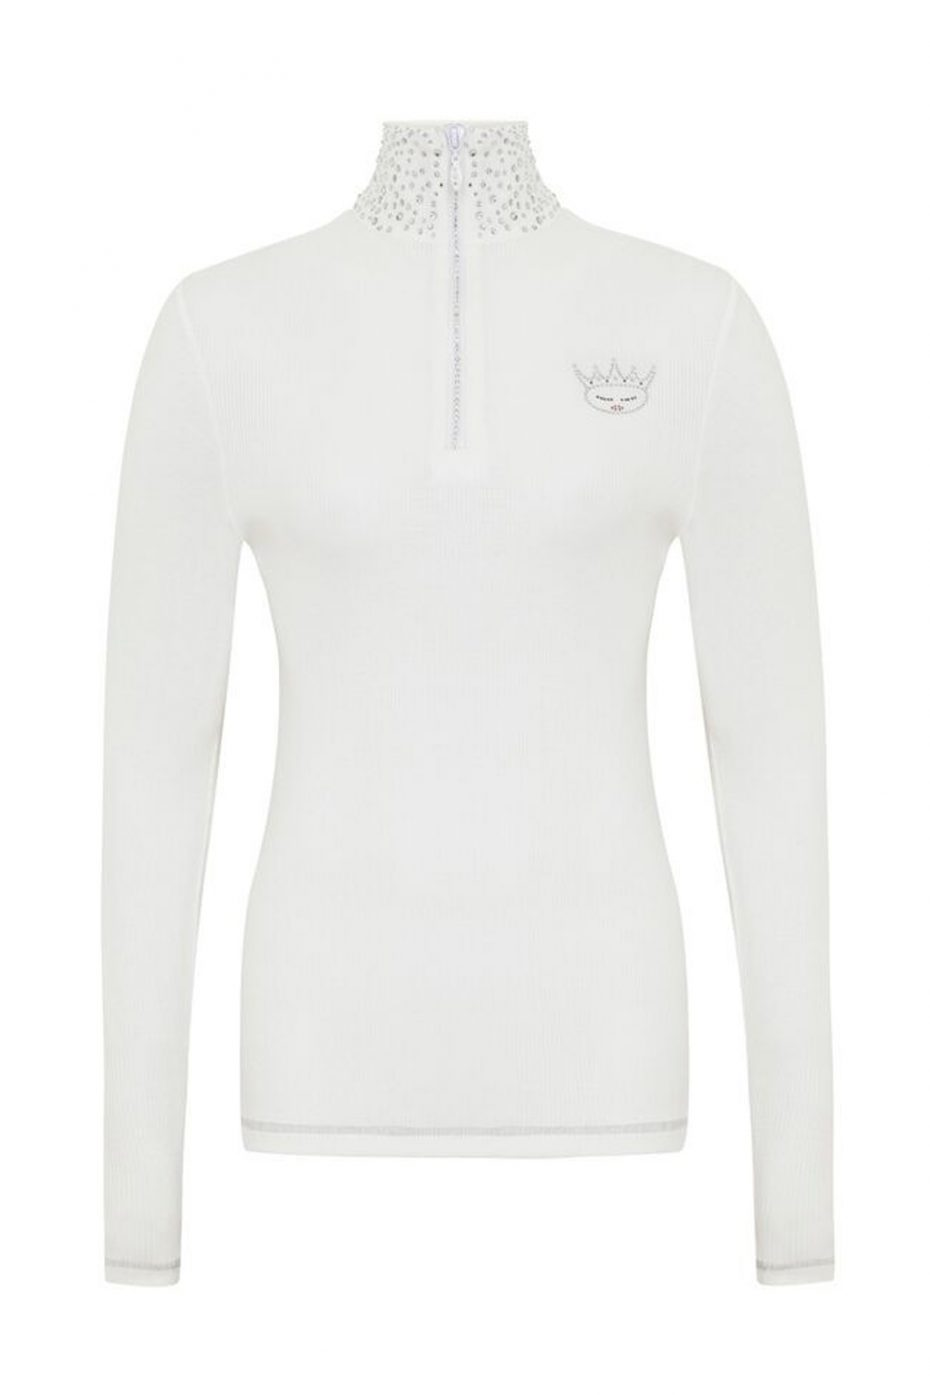 S'No Queen VIP zip polo: White LAST TWO REMAINING-389